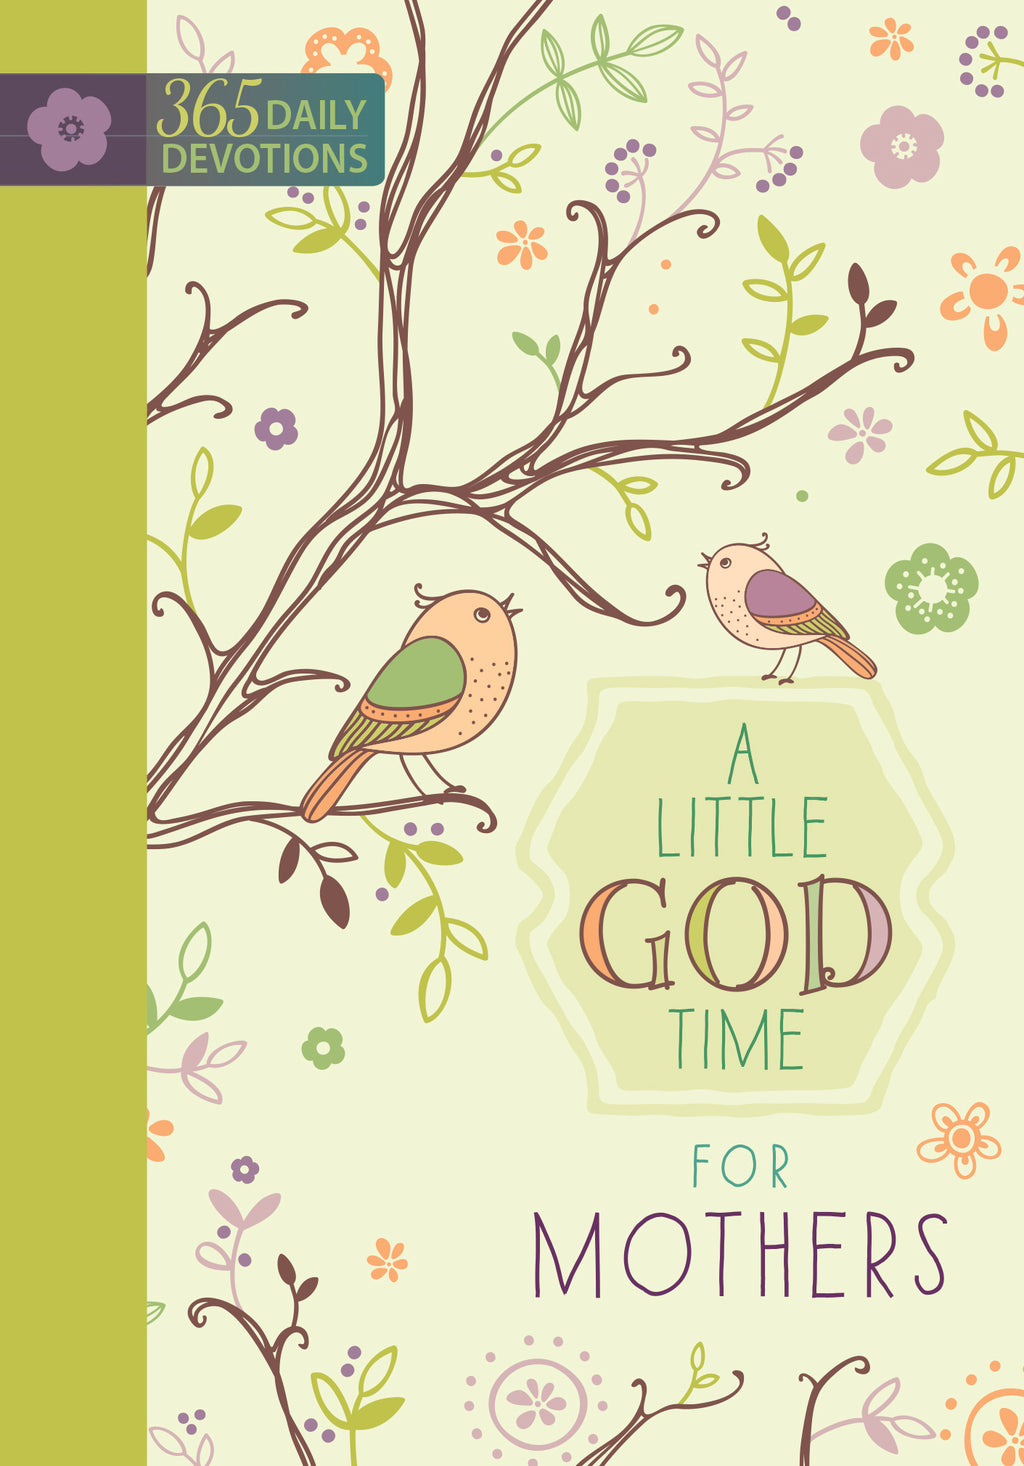 Little God Time For Mothers (365 Day Devotional)